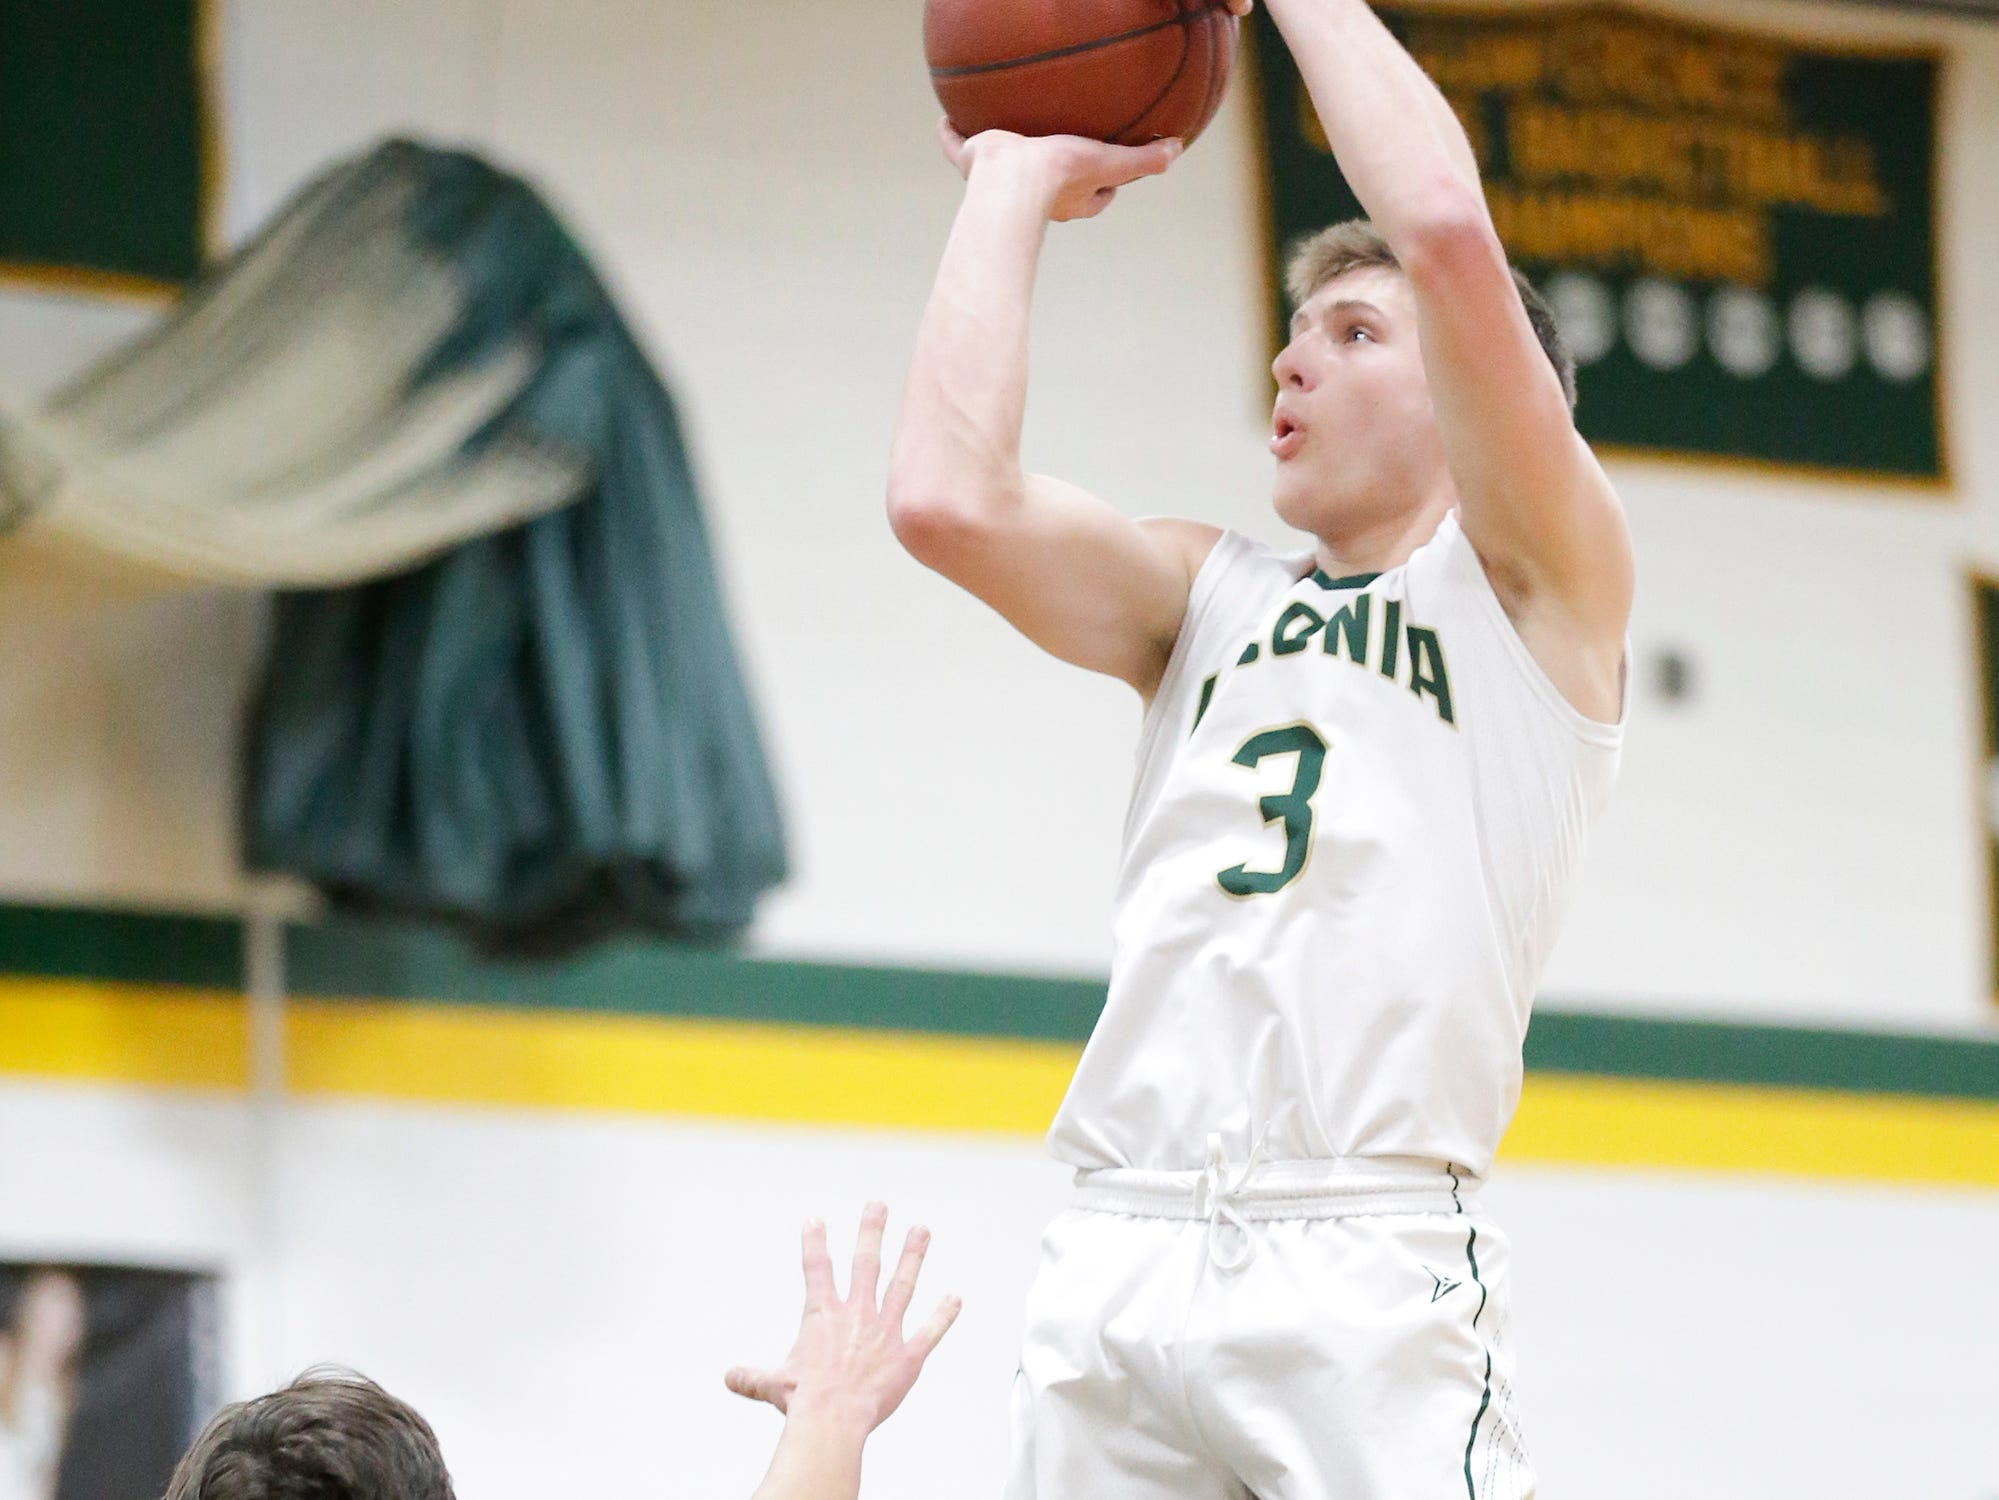 Laconia High School boys basketball's Reed Gunnink goes up for a shot against Mayville High School during their game Friday, January 25, 2019 in Rosendale. Laconia won the game 80-54. Doug Raflik/USA TODAY NETWORK-Wisconsin